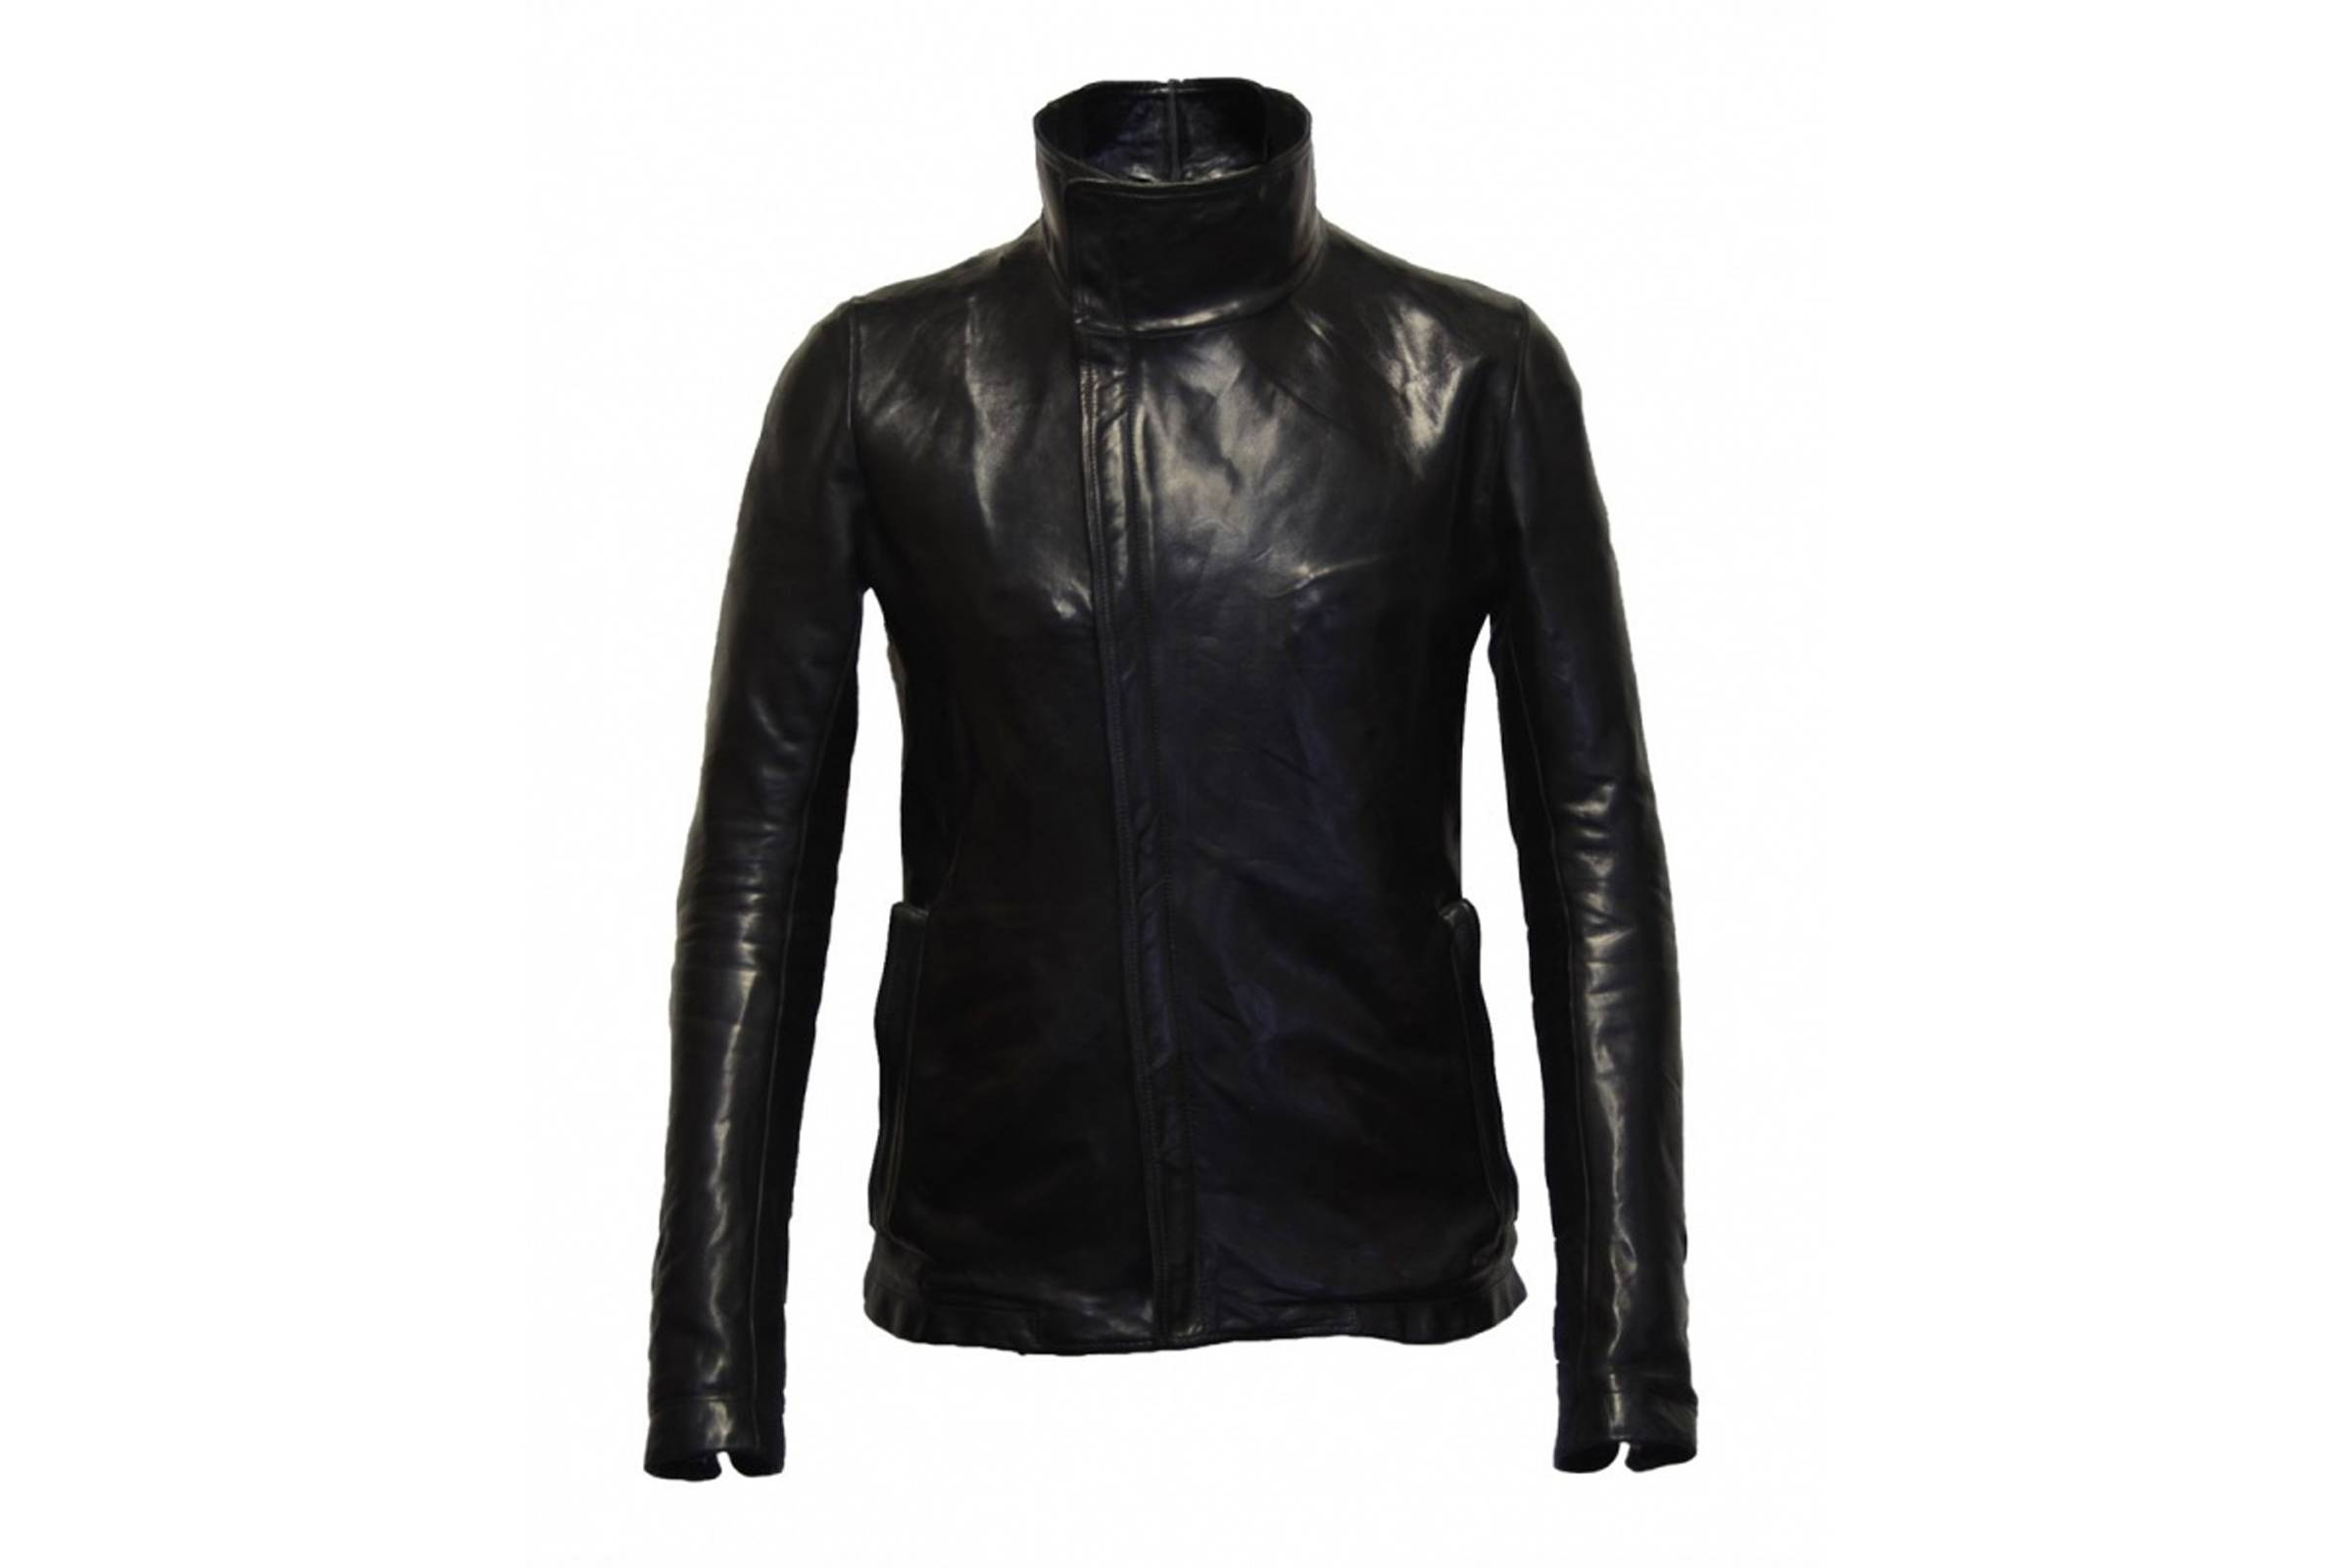 Carol Christian Poell LM2599 CORS High Neck Leather Jacket